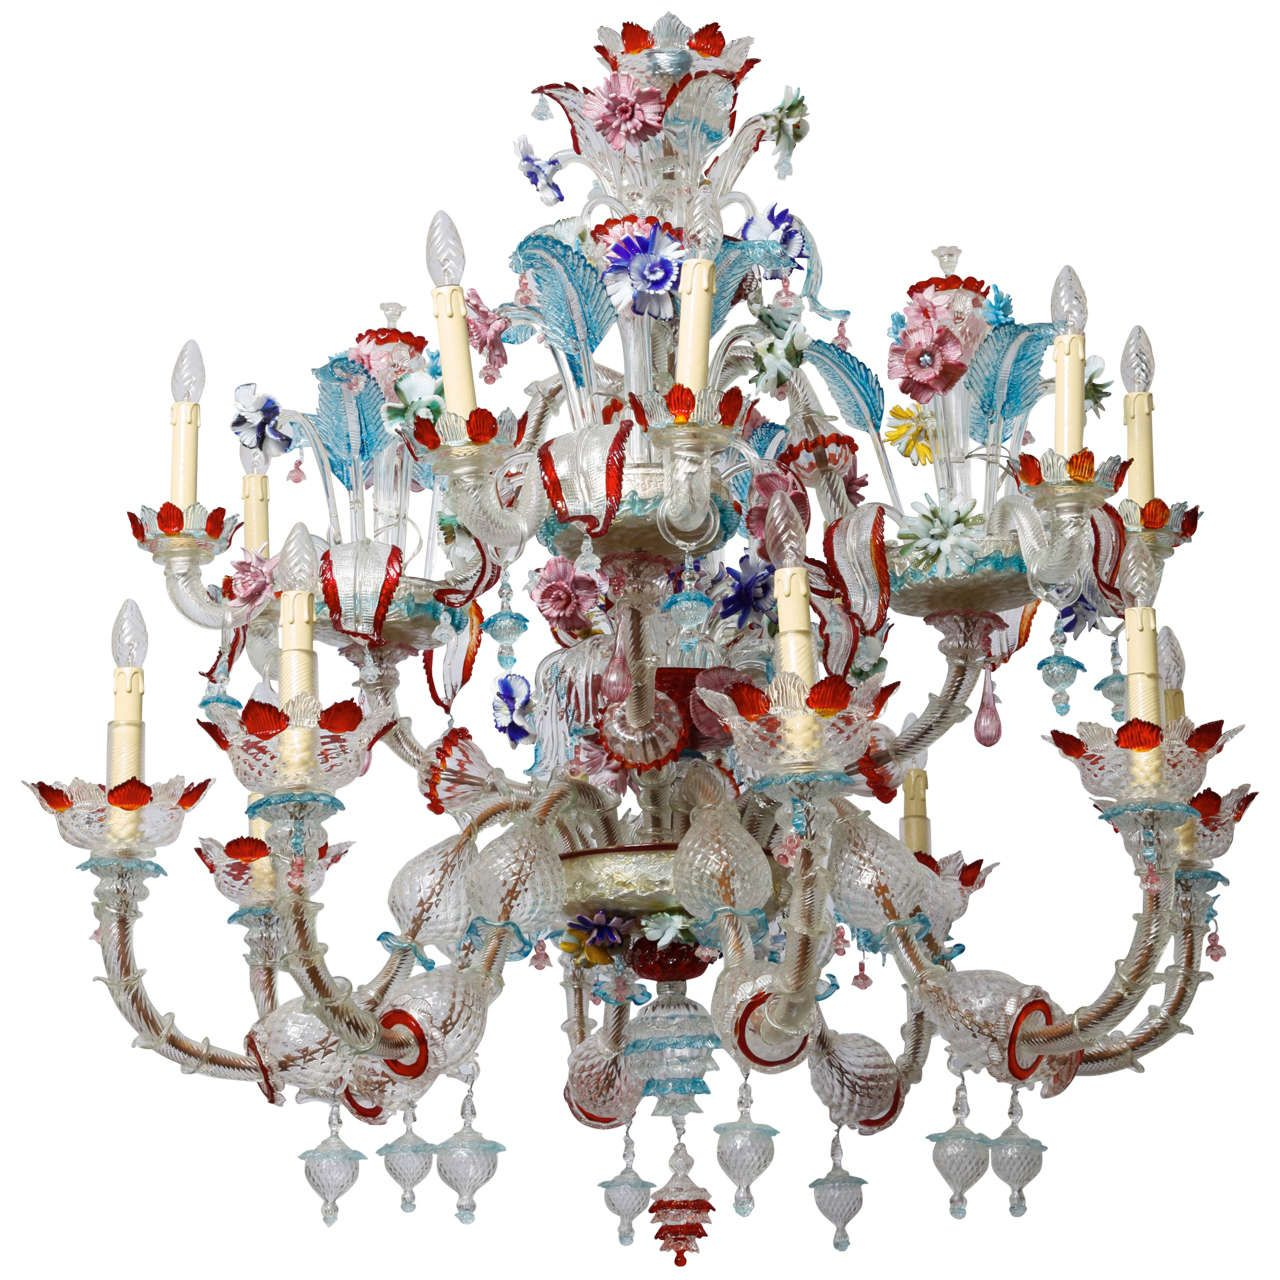 1940s italian murano glass multicolor chandelier from a unique 1940s italian murano glass multicolor chandelier from a unique collection of antique and modern chandeliers mozeypictures Images